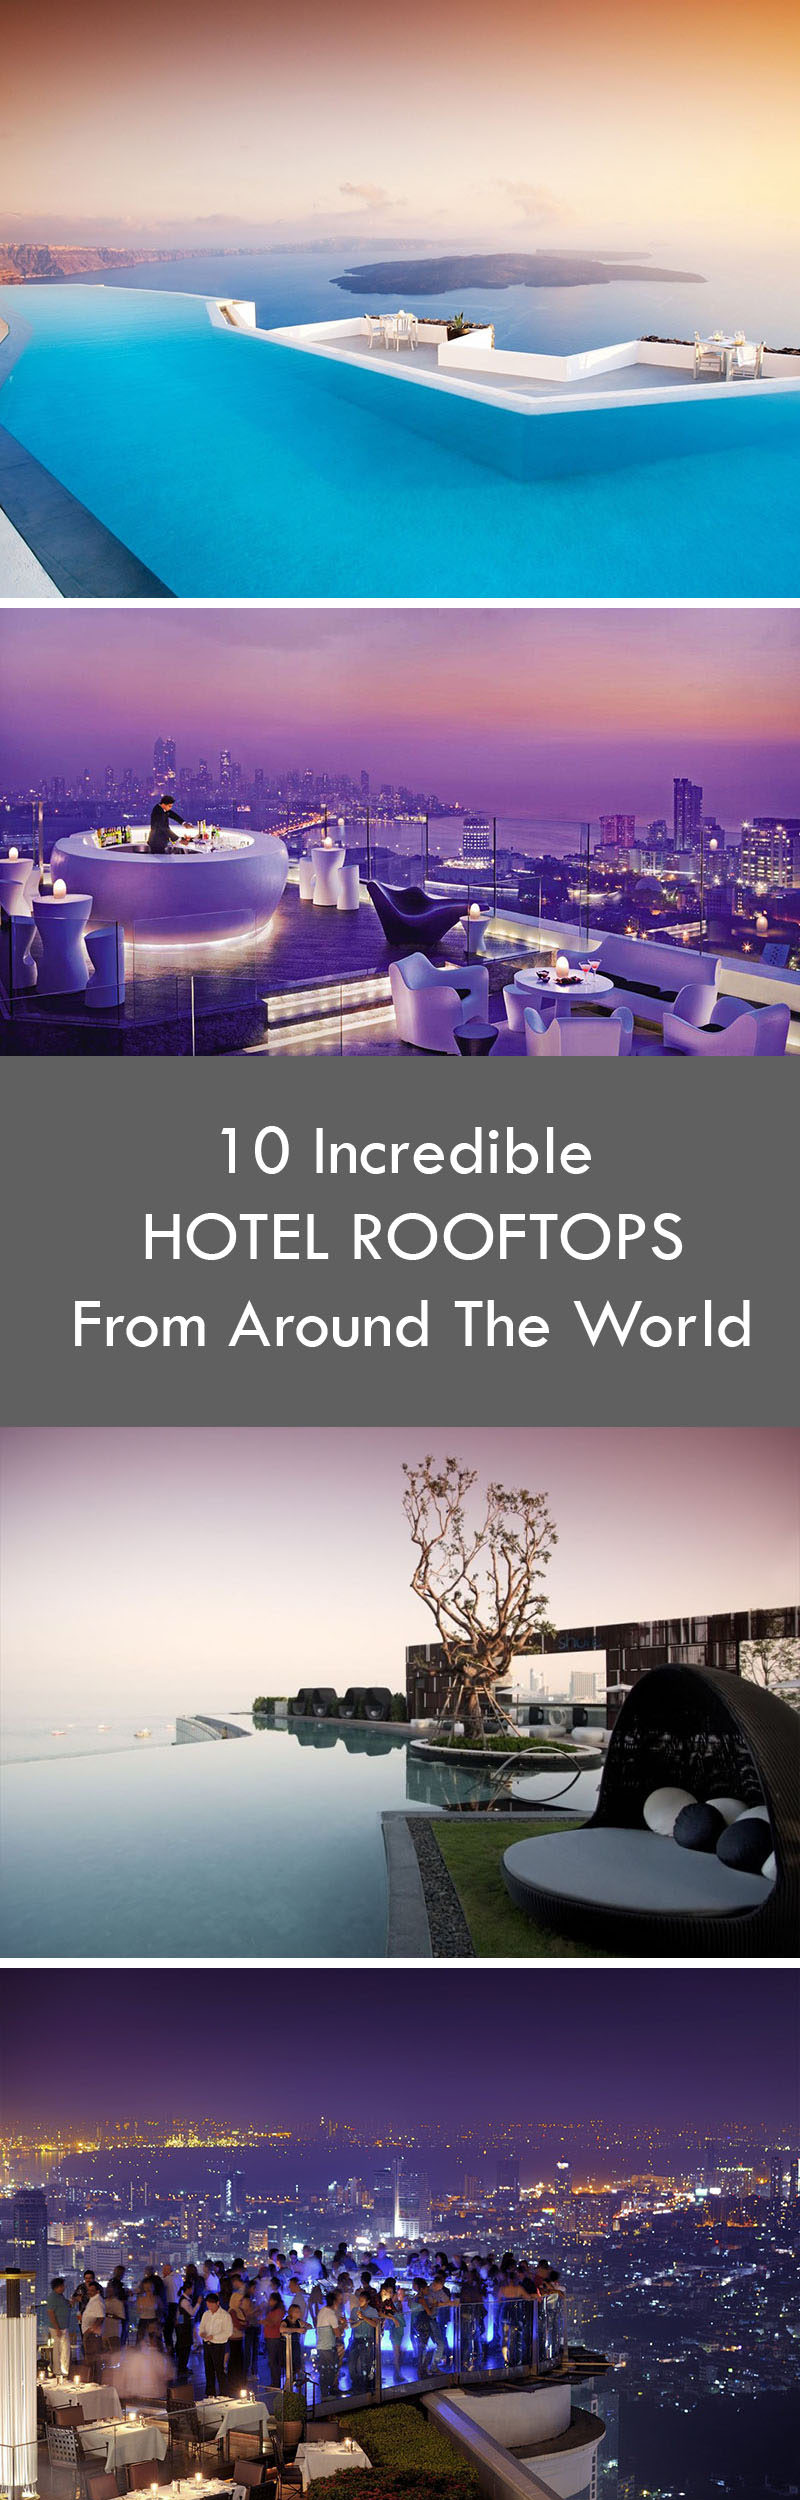 10 Incredible Hotel Rooftops From Around The World